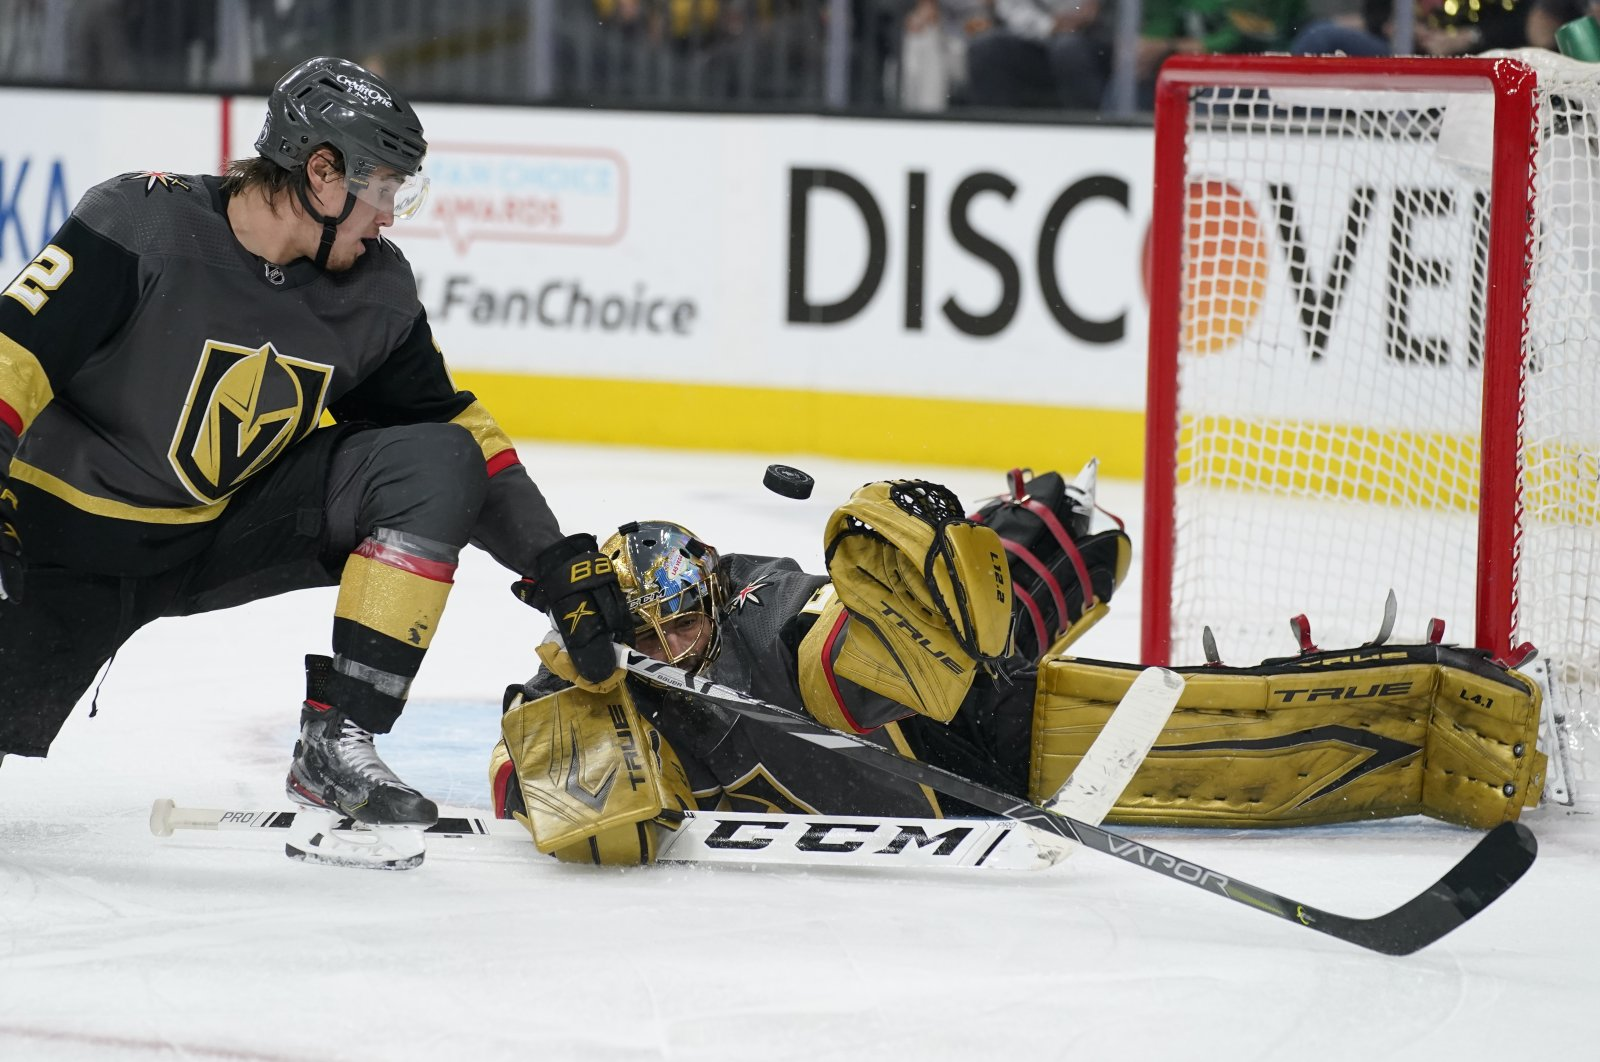 Vegas Golden Knights goaltender Marc-Andre Fleury (29) makes a save against the Colorado Avalanche as Vegas Golden Knights defenseman Zach Whitecloud (2) watches during the third period in Game 6 of an NHL hockey Stanley Cup second-round playoff series, Las Vegas, U.S., June 10, 2021. (AP Photo/John Locher)